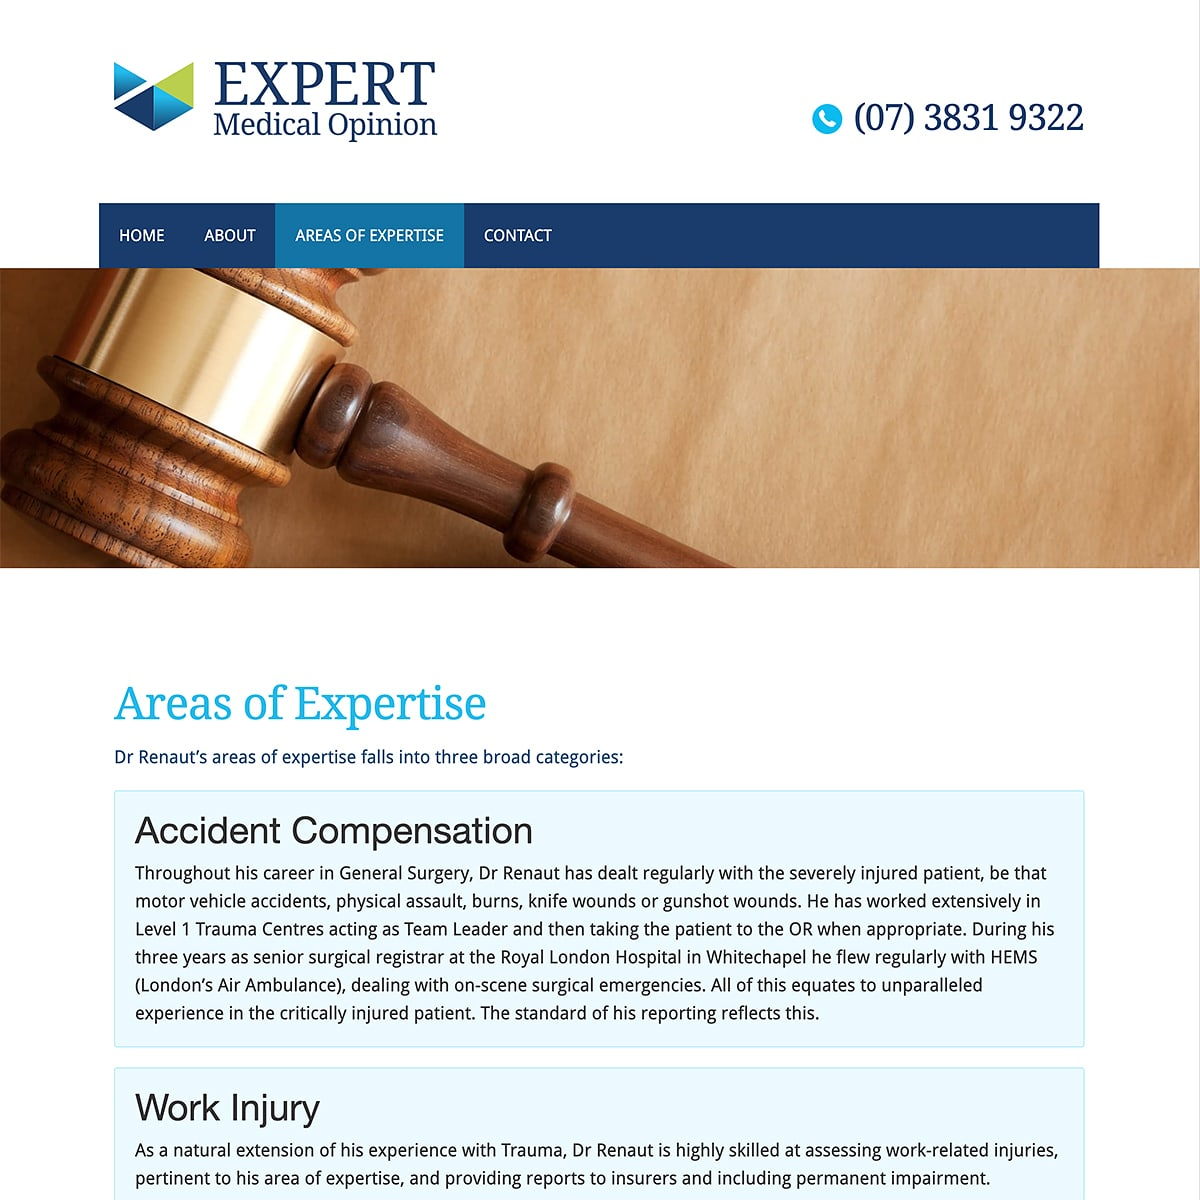 Expert Medical Opinion - Areas of Expertise